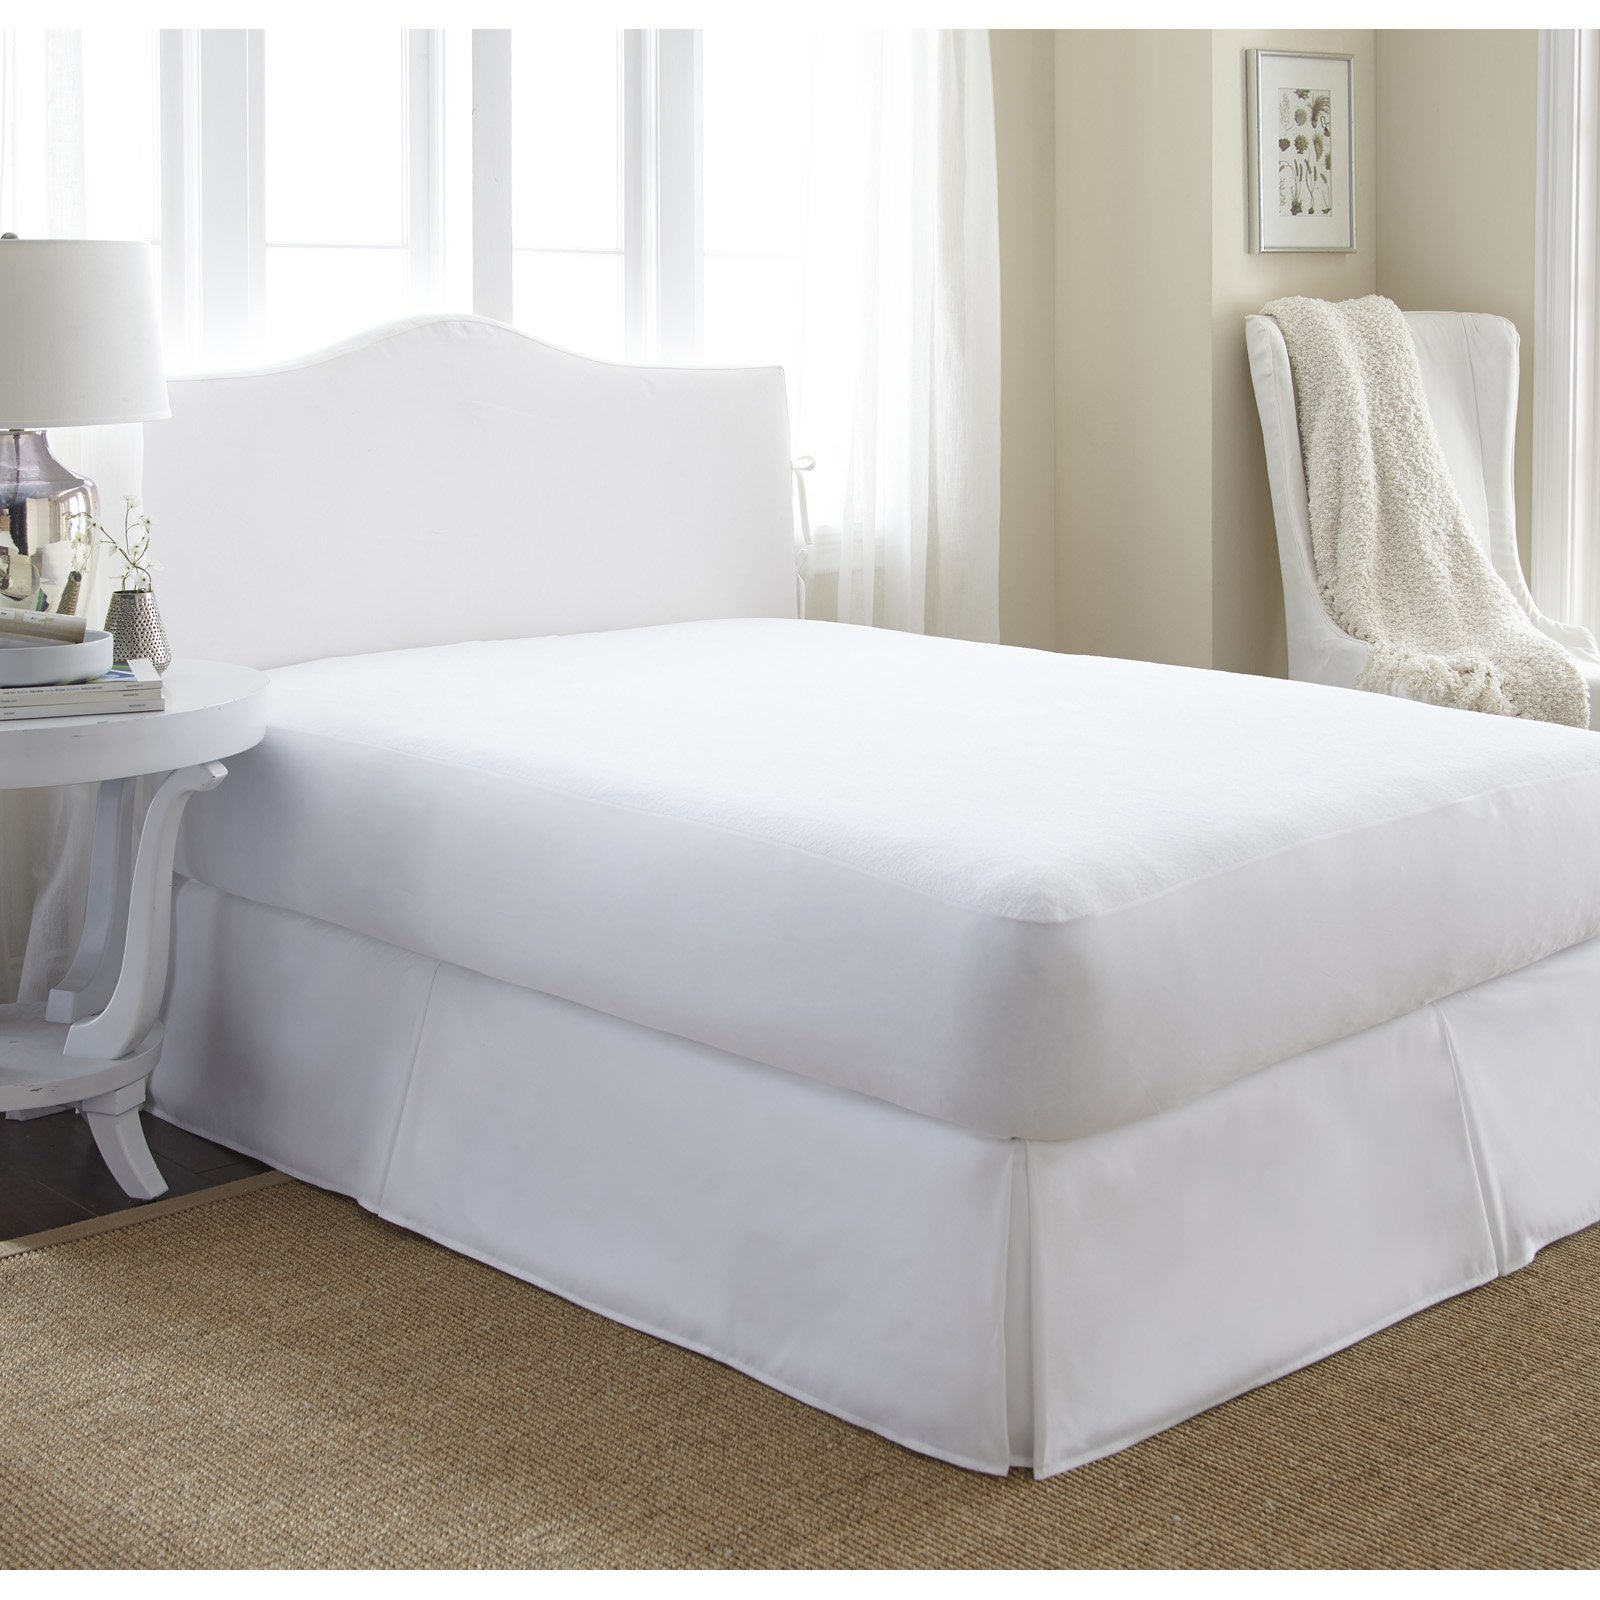 Simply Soft Waterproof Terry Cotton Top Mattress Protector by ienjoy Home by Ienjoy Home